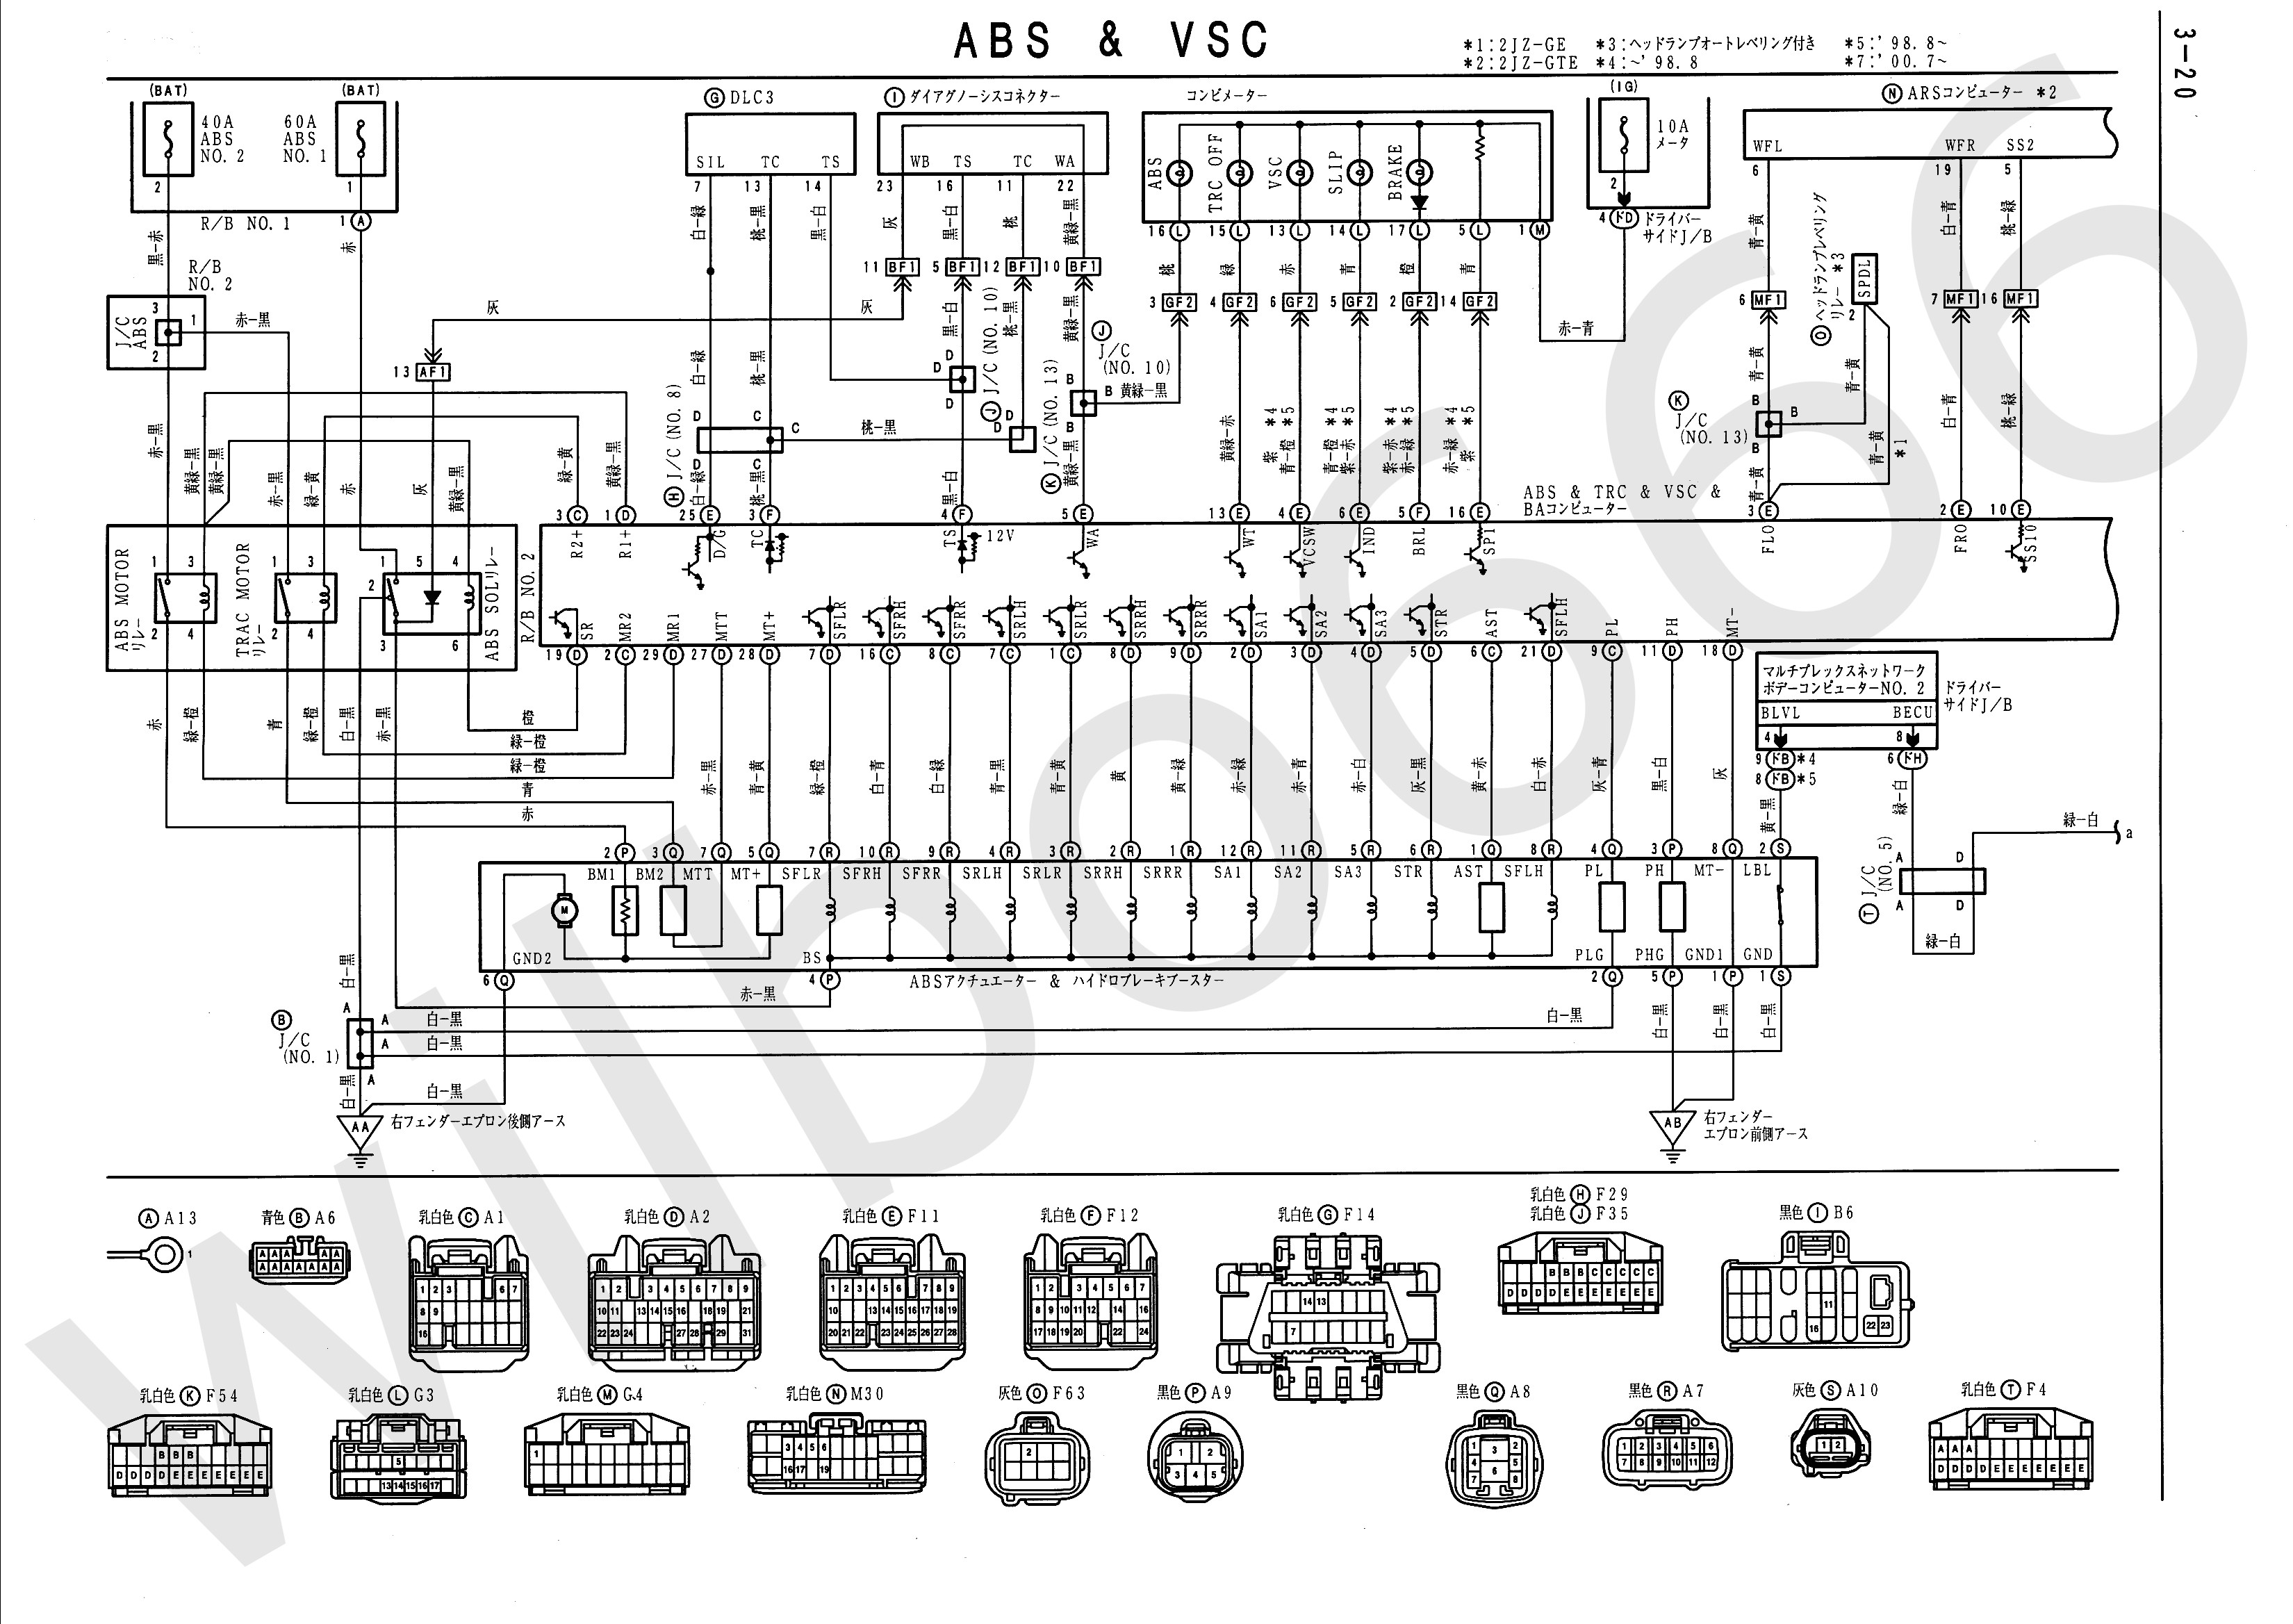 daihatsu mira engine wiring diagram automotive block diagram u2022 rh carwiringdiagram today daihatsu mira l7 wiring diagram Daihatsu Move 2010